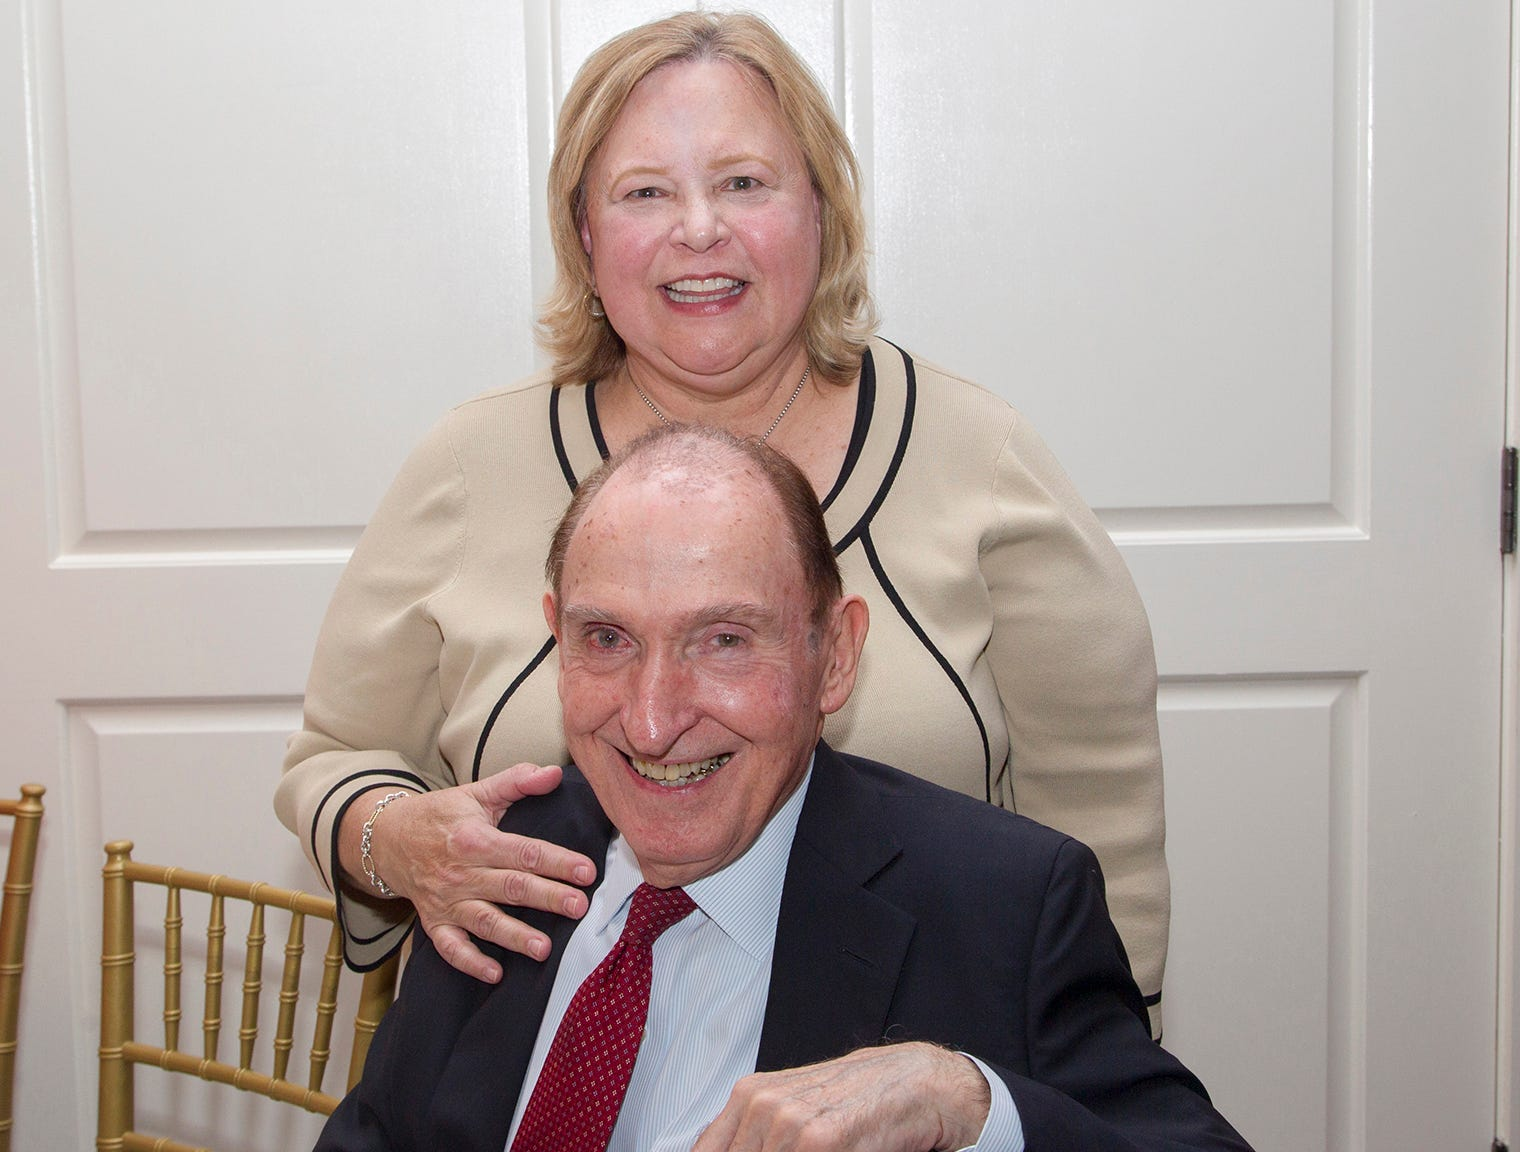 Dr. MaryAnn Michelis, Dr. Michael Michelis. Seventh annual AIR Express Golf Outing honoring Dr. Dante Implicito, M.D. for his service to Hackensack University Medical Center. 10/16/2018